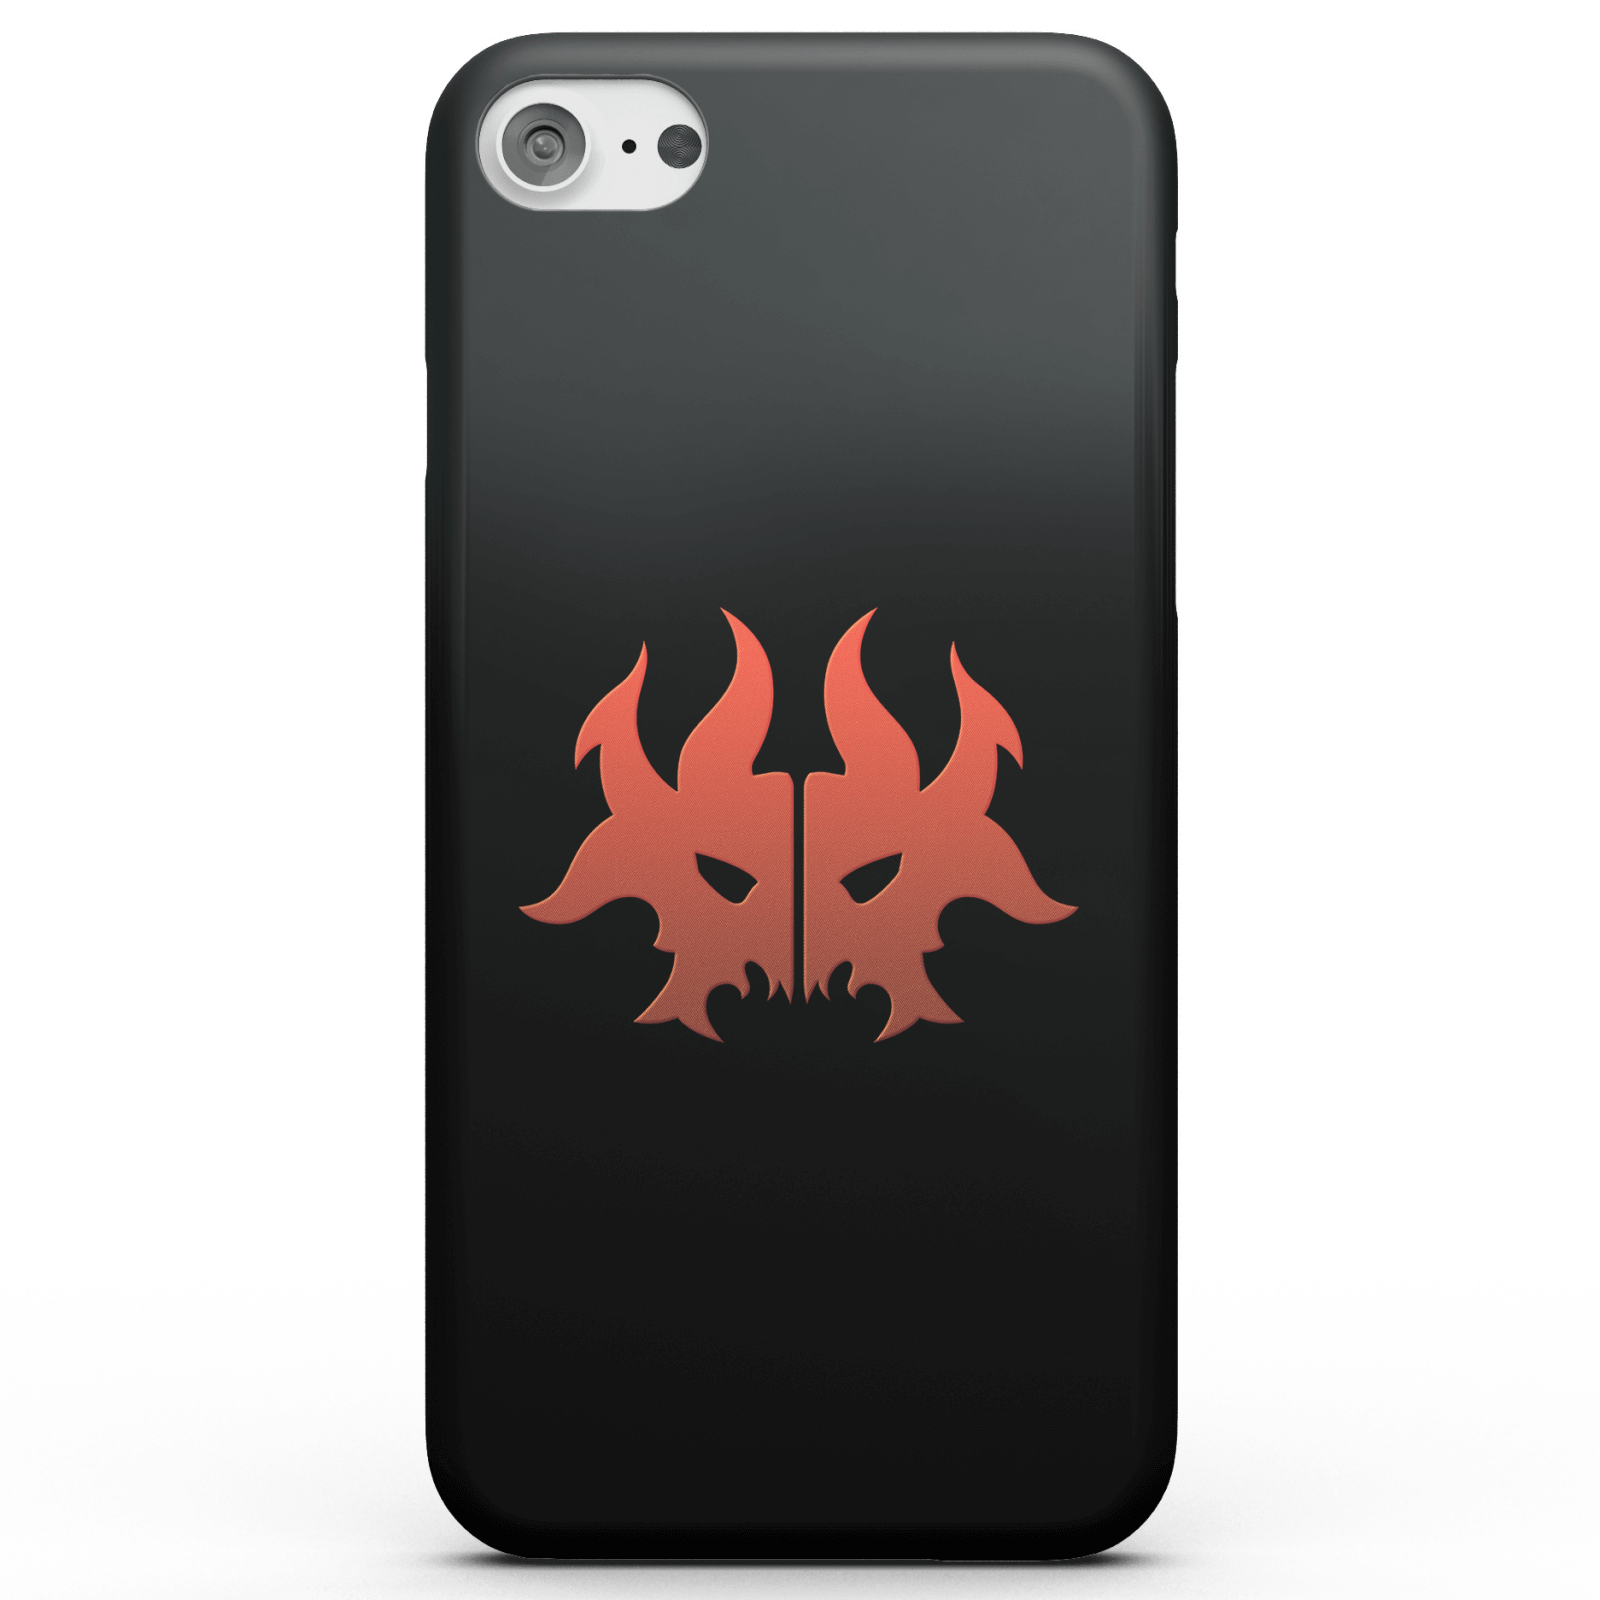 Funda Móvil Magic The Gathering Rakdos para iPhone y Android - Samsung S7 Edge - Carcasa rígida - Brillante de Magic The Gathering